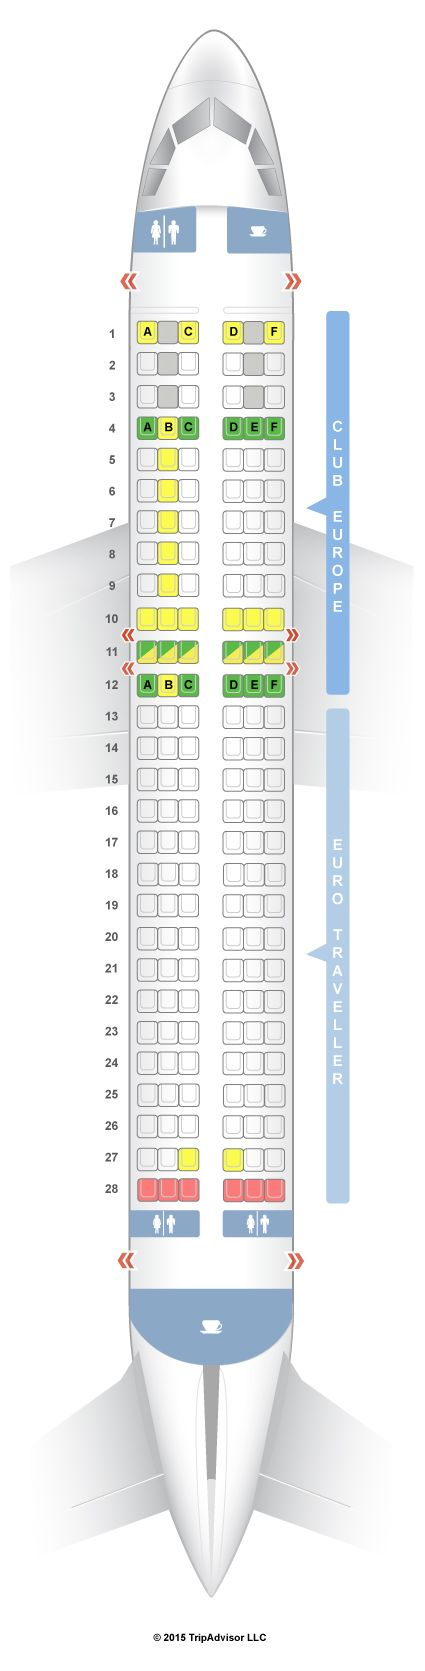 Seatguru Seat Map British Airways Airbus A320 320 European Seatguru Seatguru Economy Seats British Airways